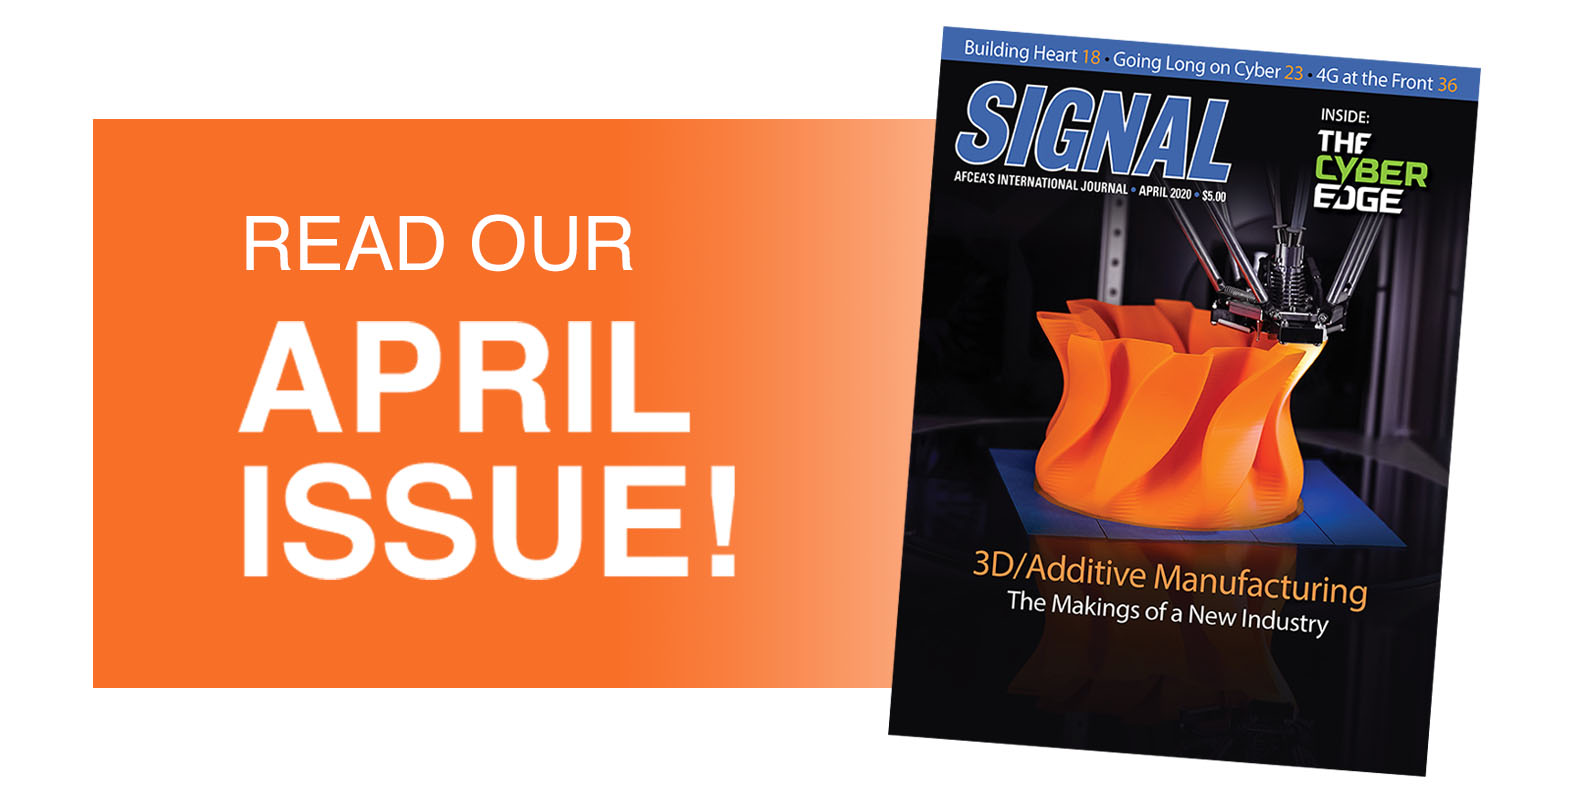 SIGNAL March Issue